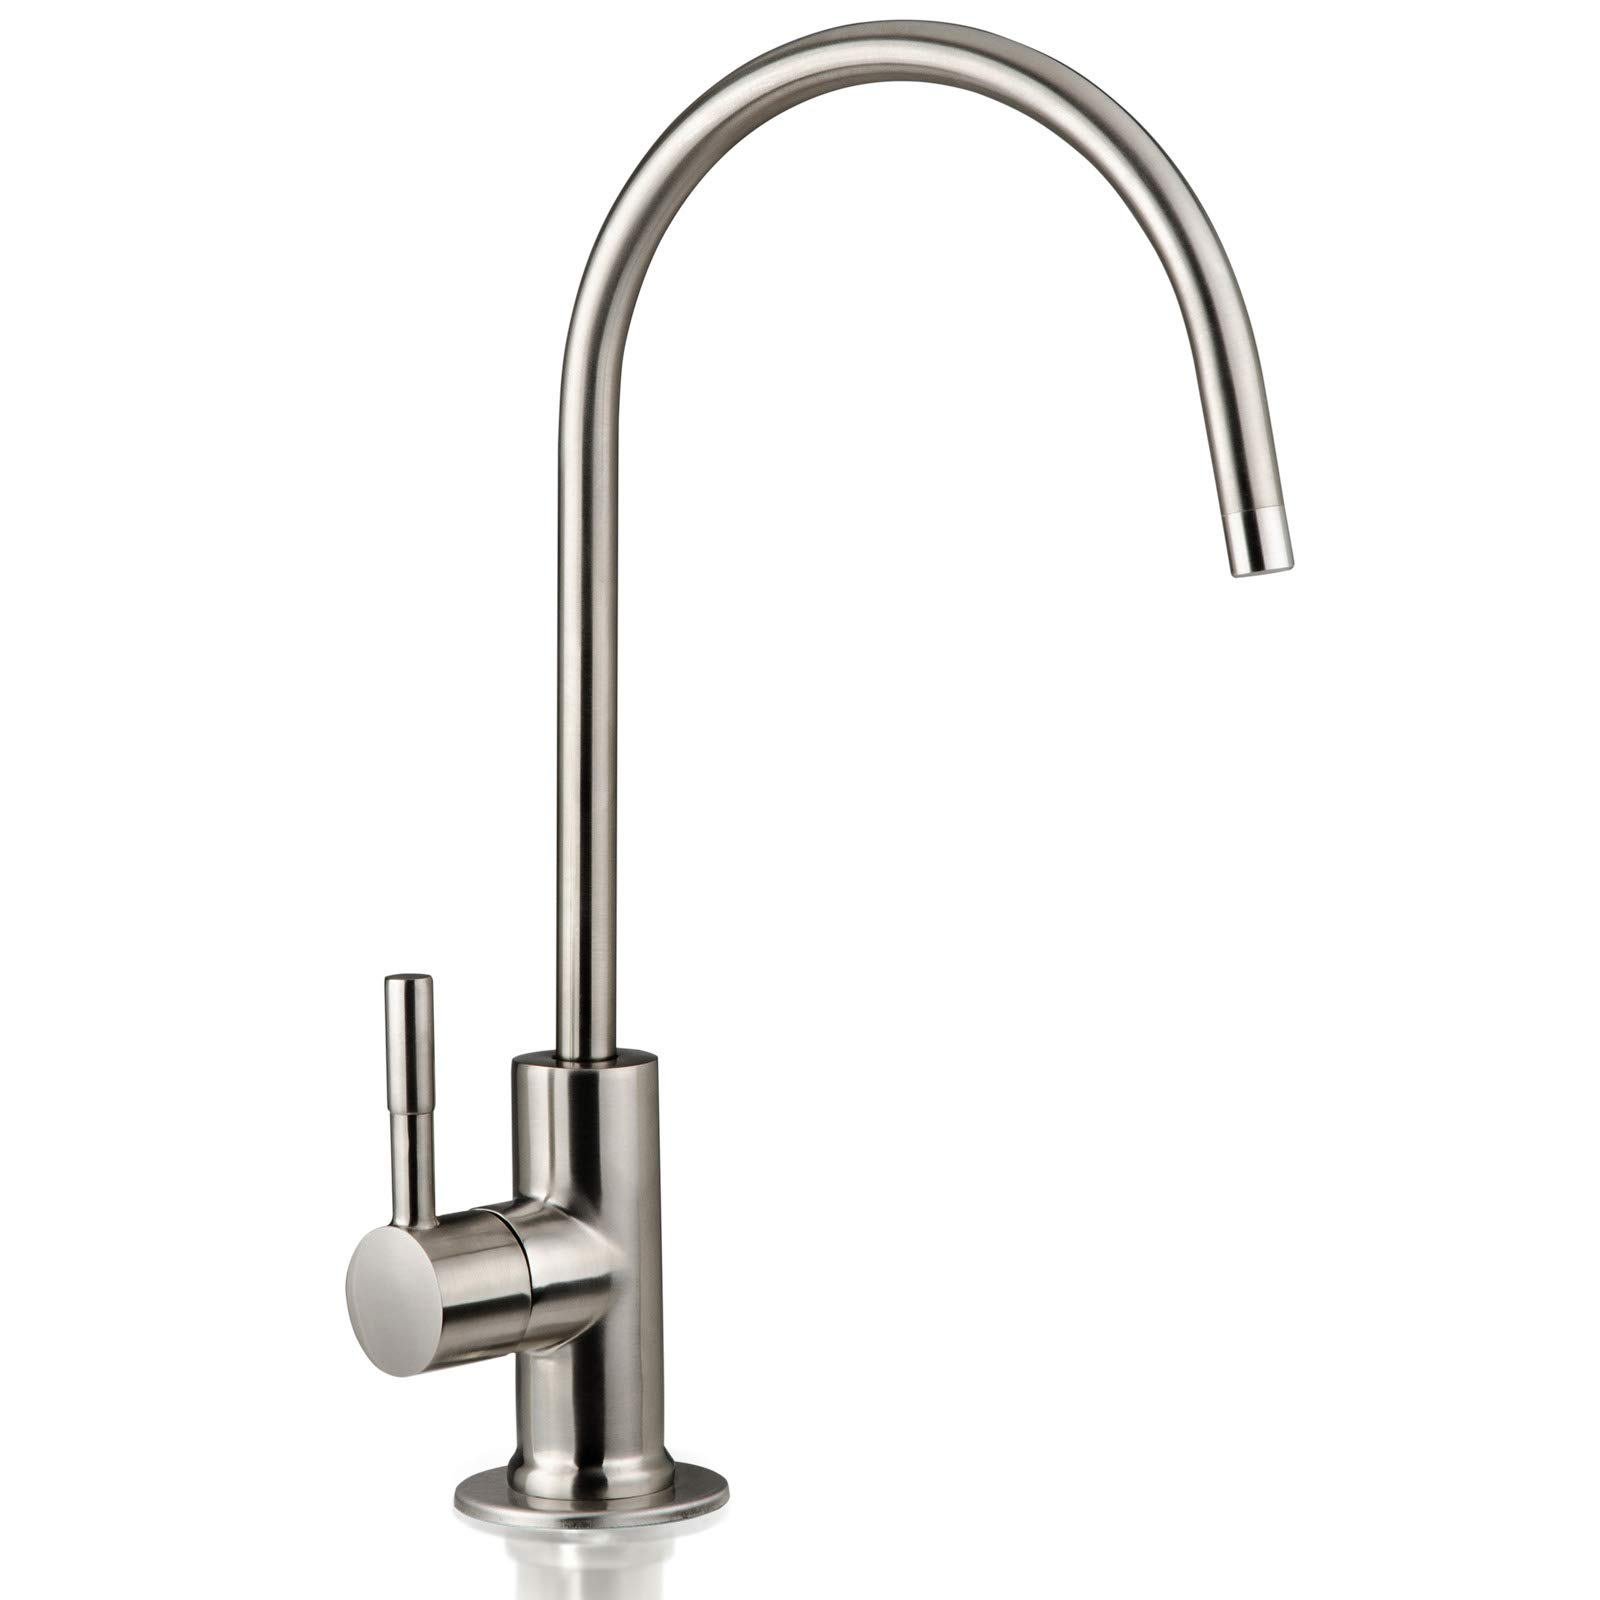 iSpring GA1-BN Kitchen Bar Sink Lead-Free Drinking Water Faucet, Reverse Osmosis Faucet, Contemporary Style, High Spout, Brushed Nickel Finish by iSpring